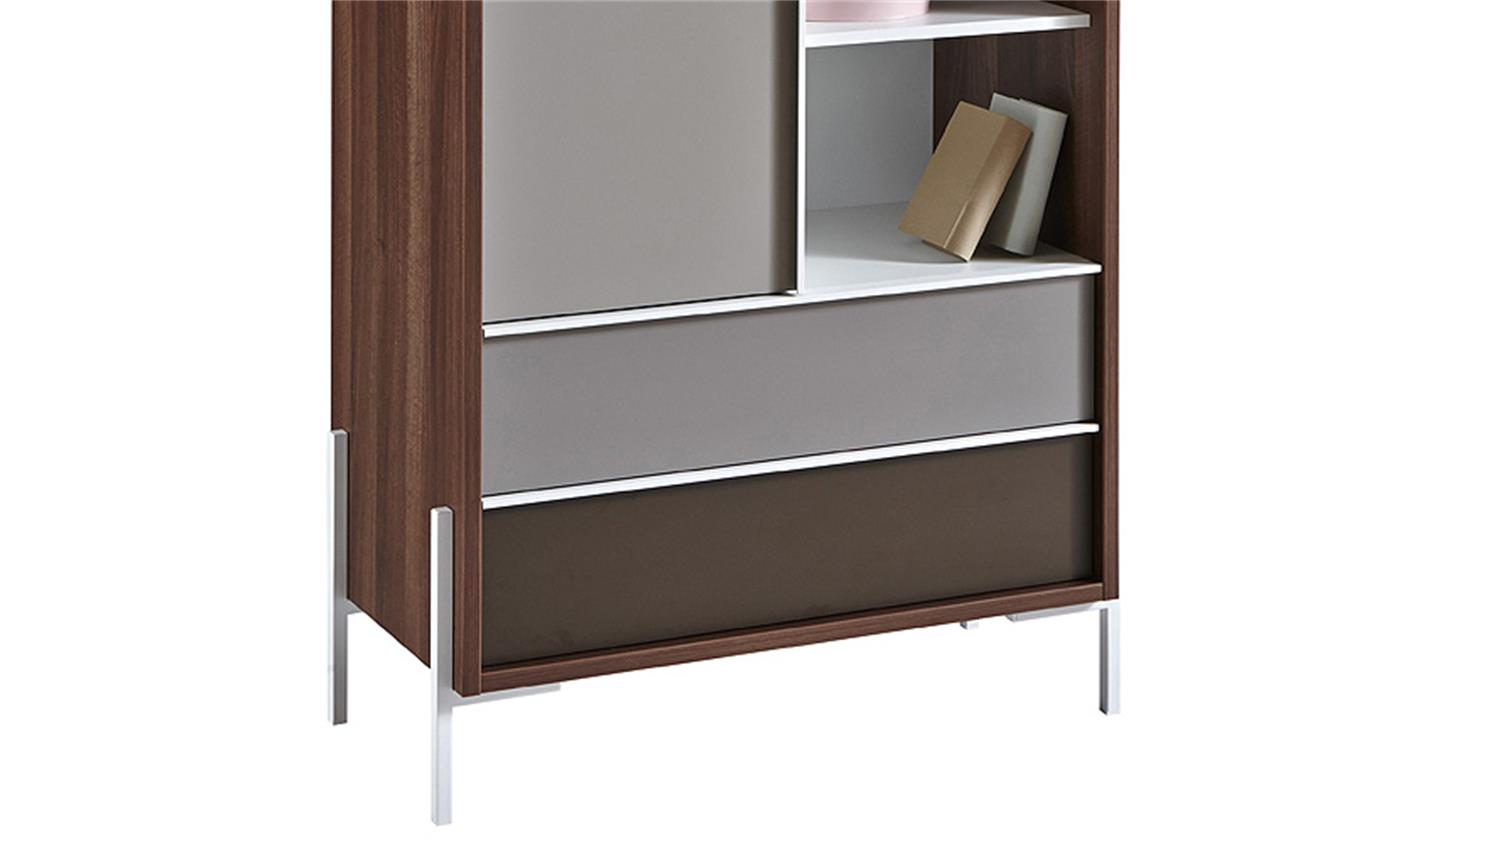 kommode vogue highboard sideboard in nussbaum braun und wei. Black Bedroom Furniture Sets. Home Design Ideas